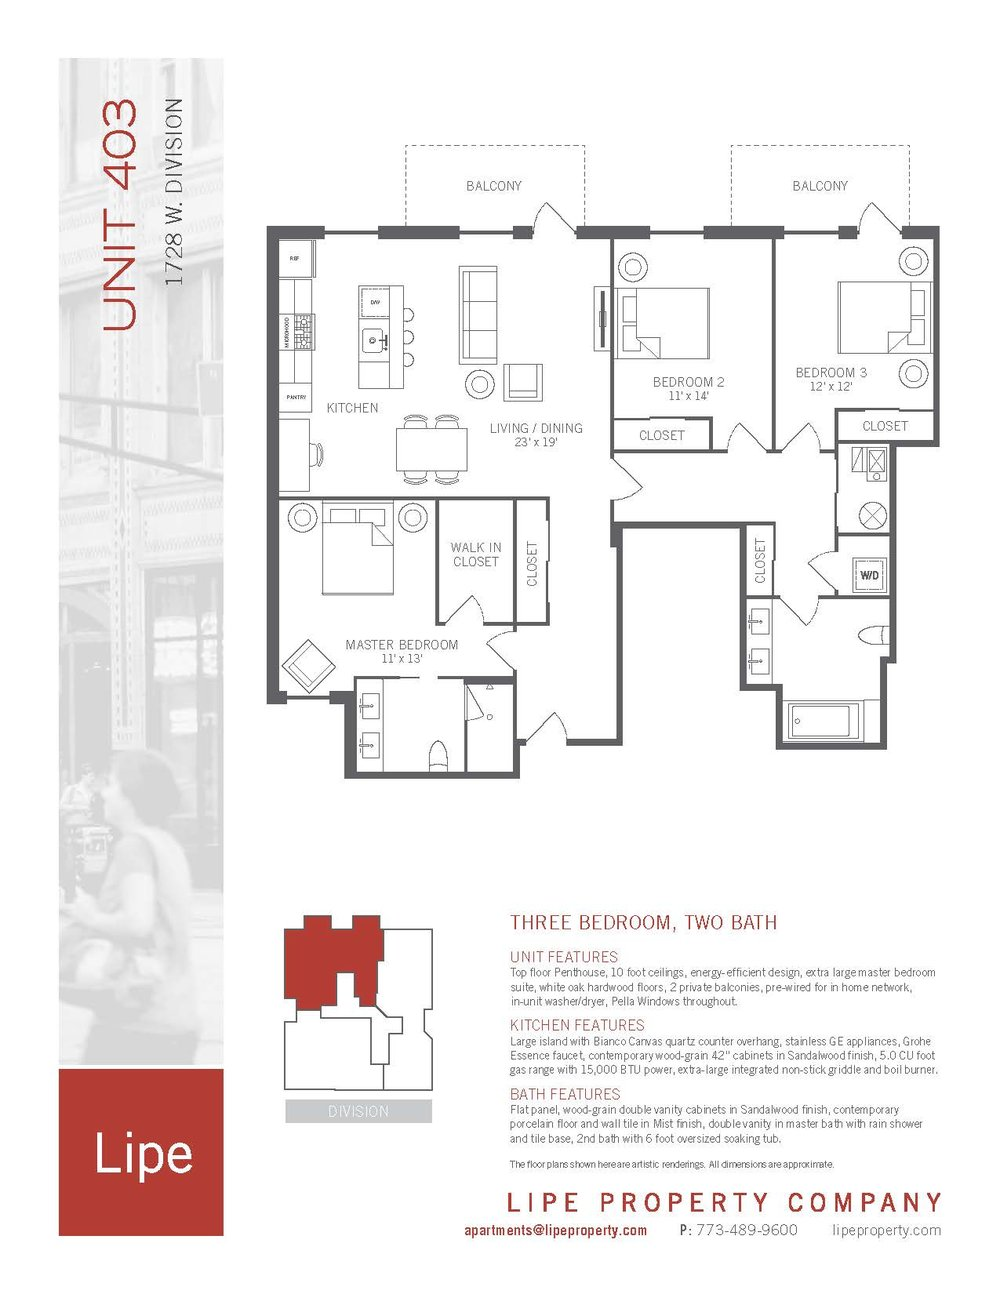 1728-West-Division-403-floorplan-Chicago-apartment-for-rent.jpg